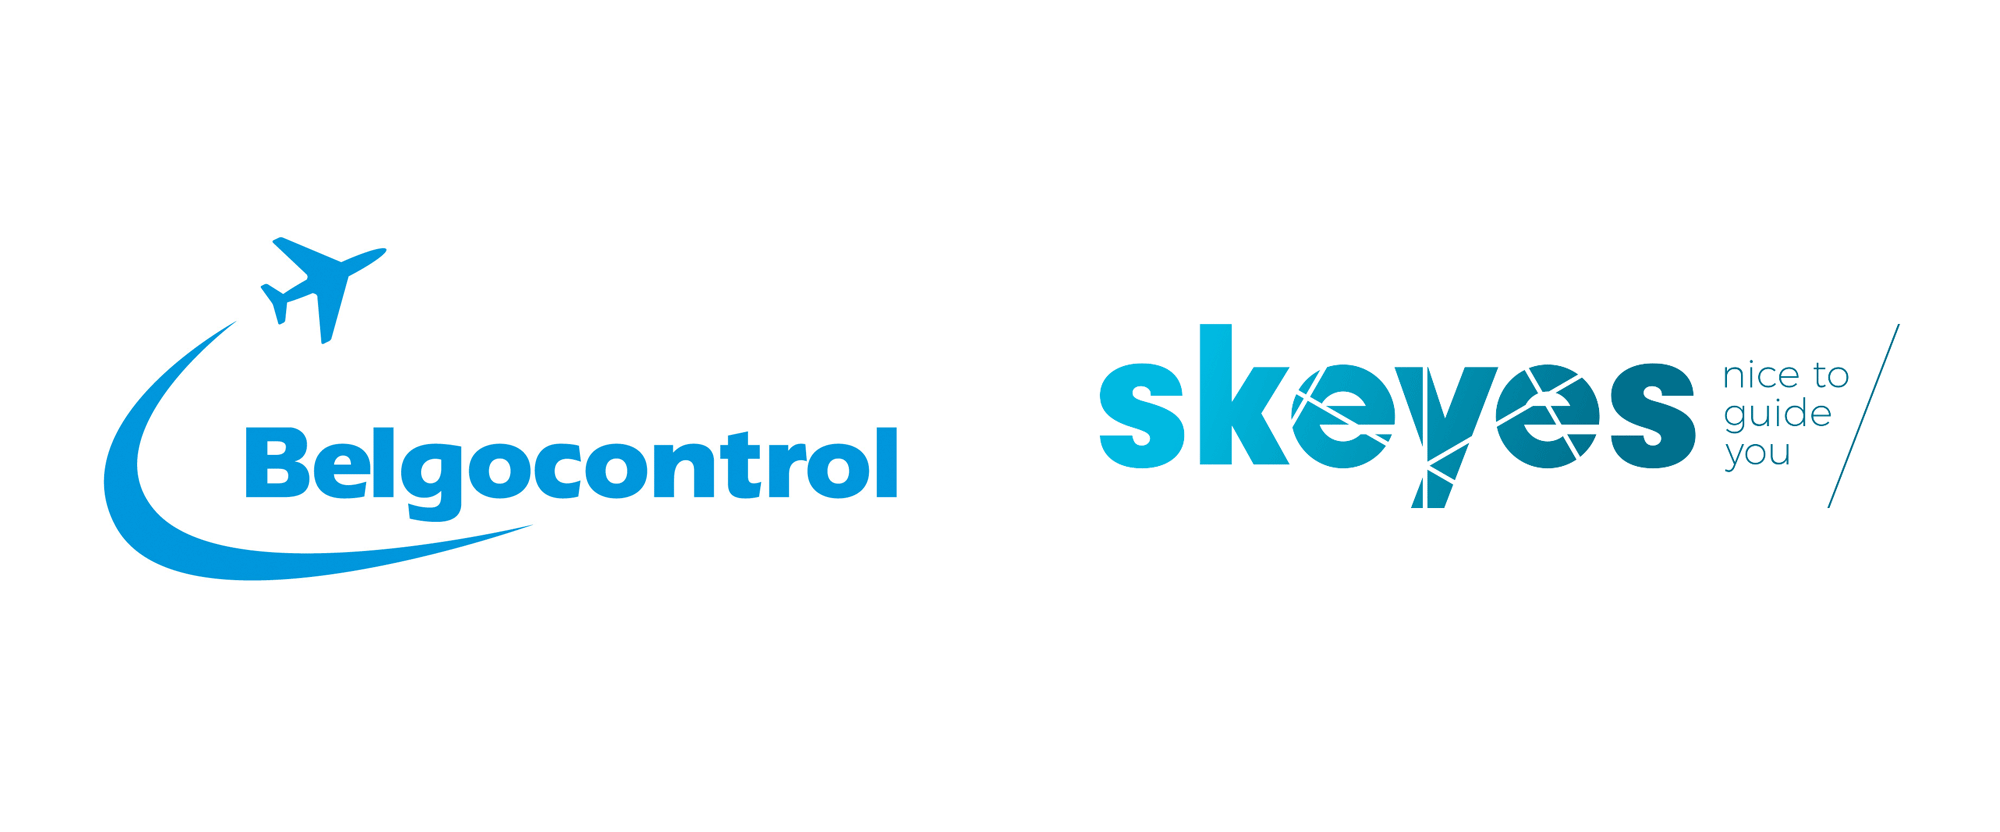 New Name and Logo for Skeyes